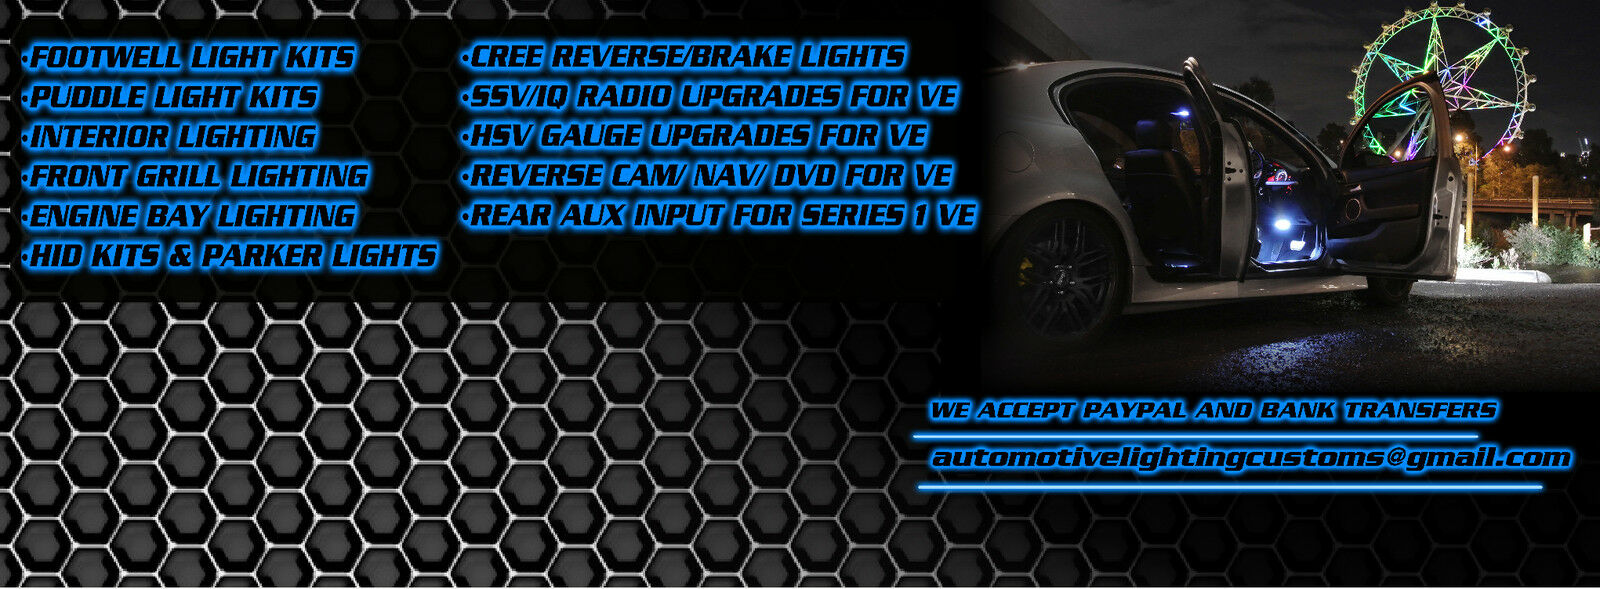 Automotive Lighting Customs